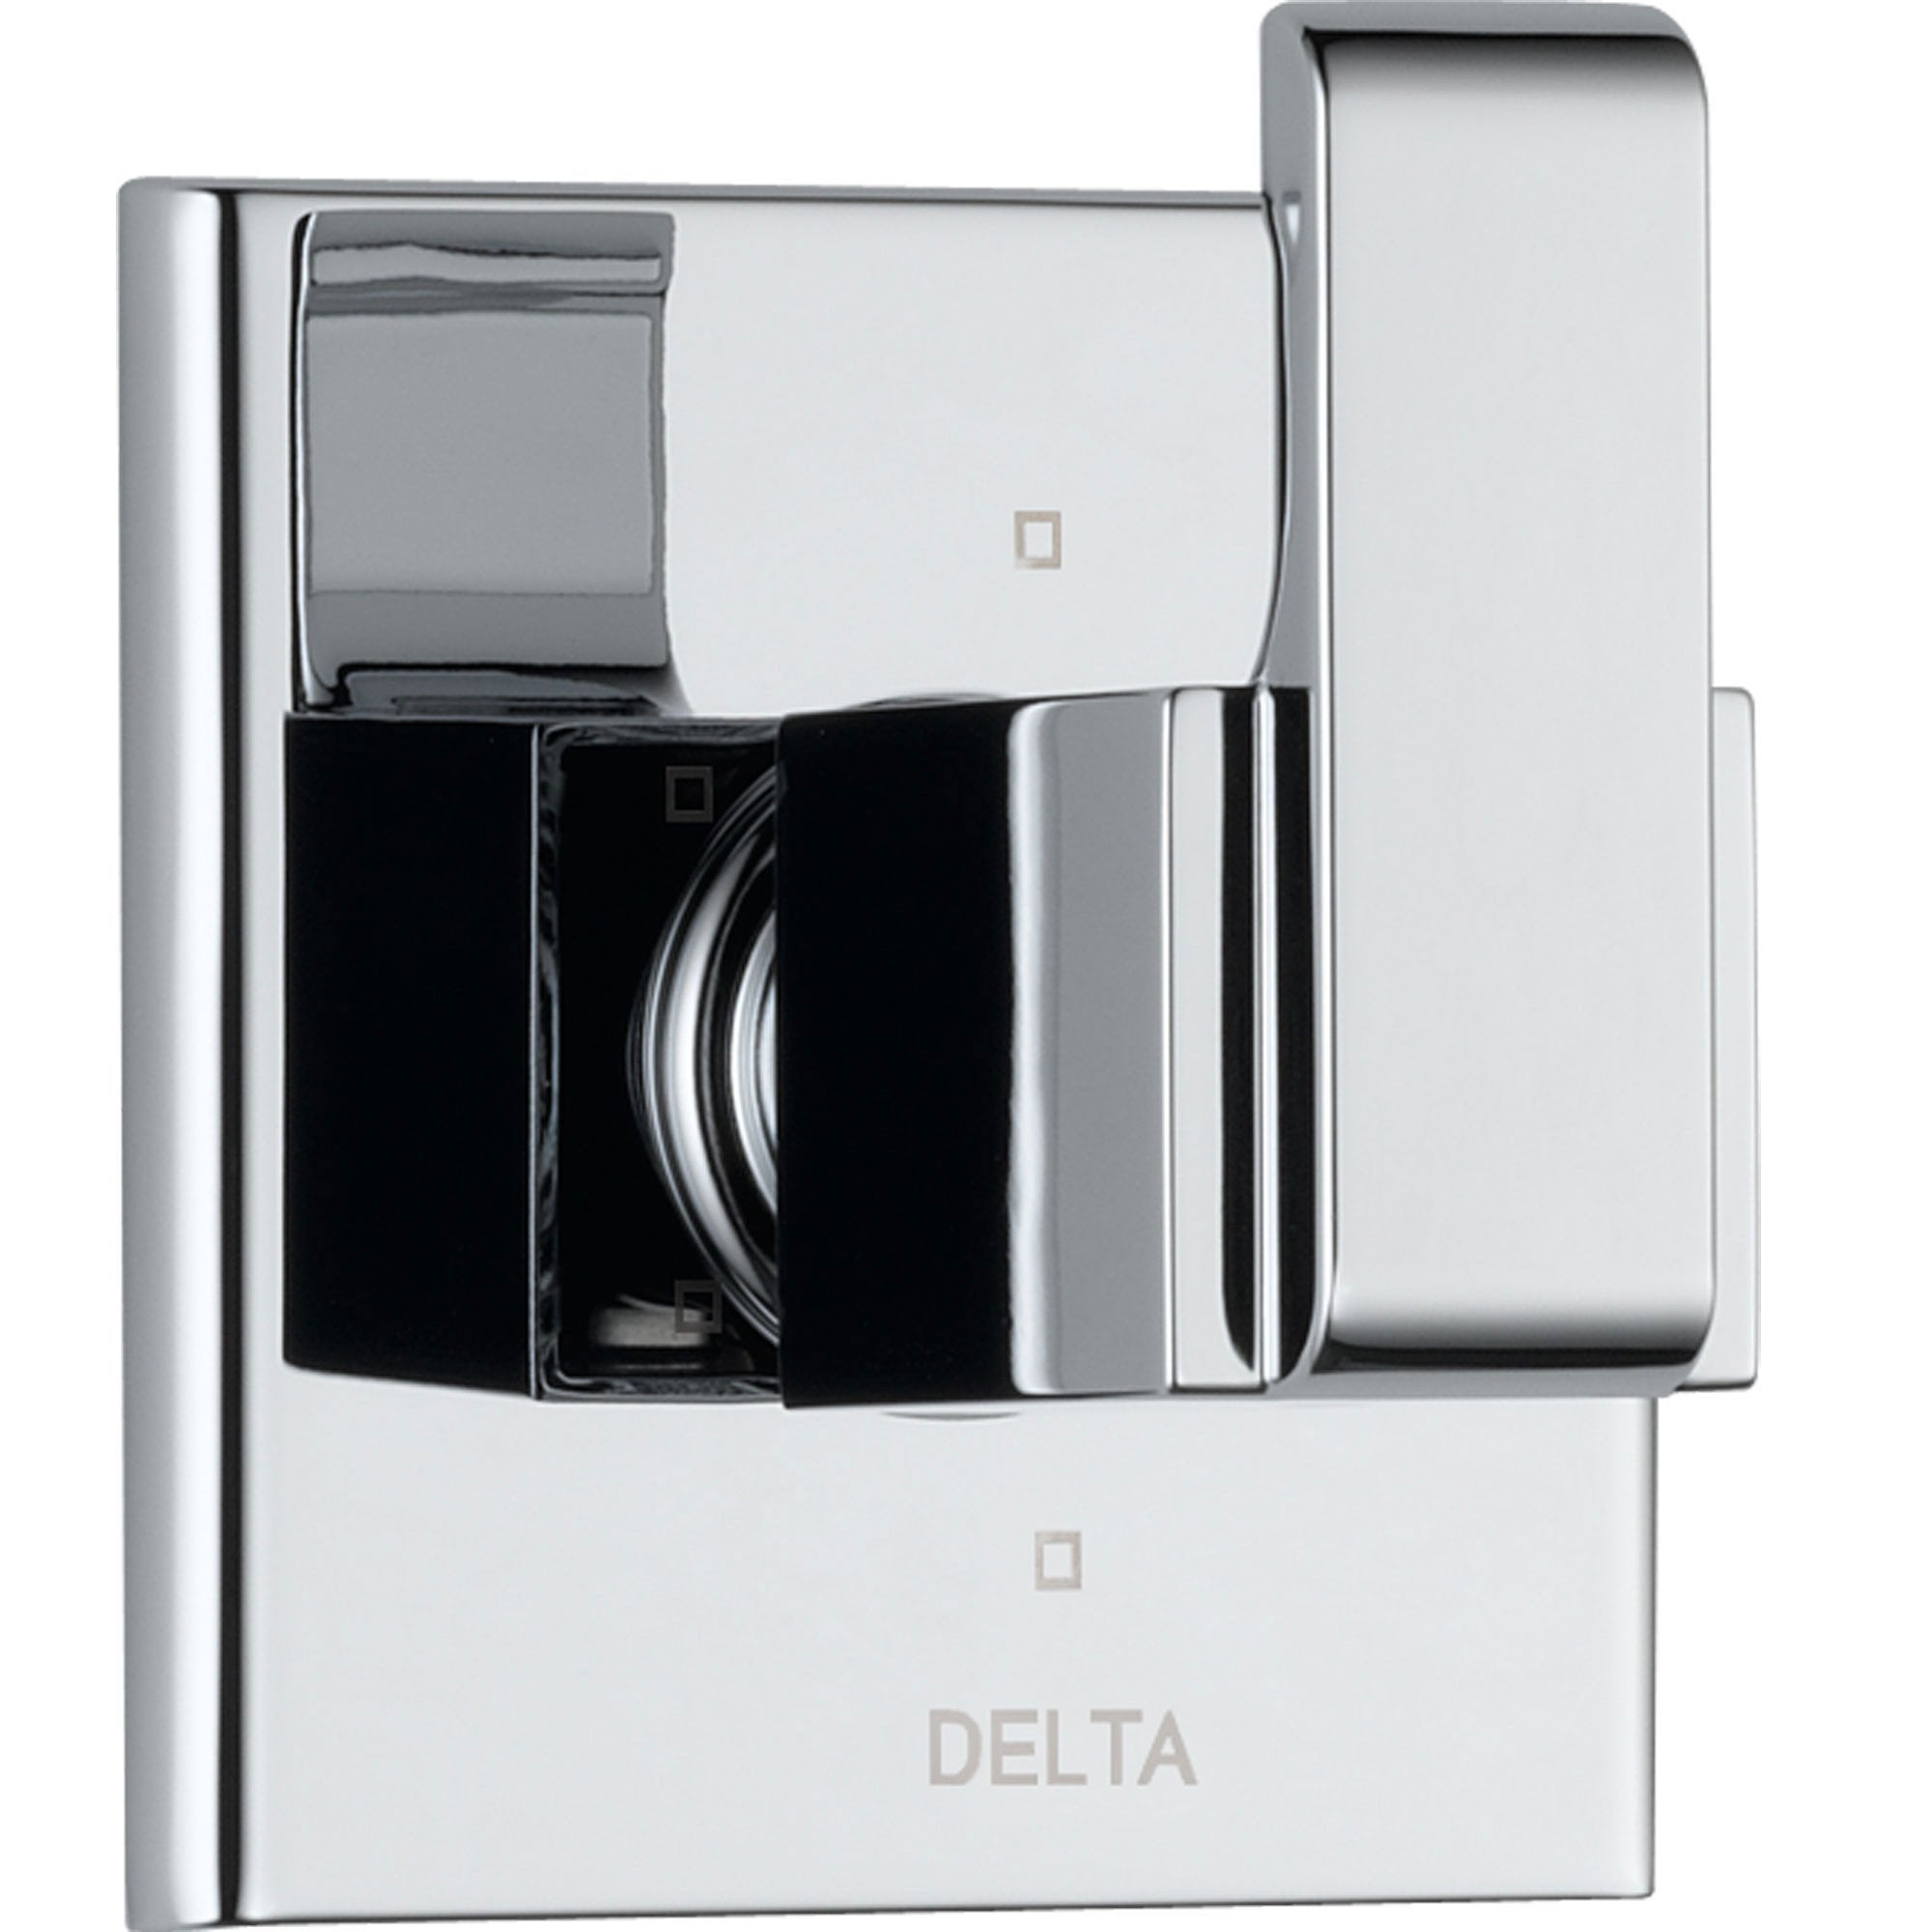 Delta Arzo 6-Setting Chrome Single Handle Shower Diverter Trim Kit 560994